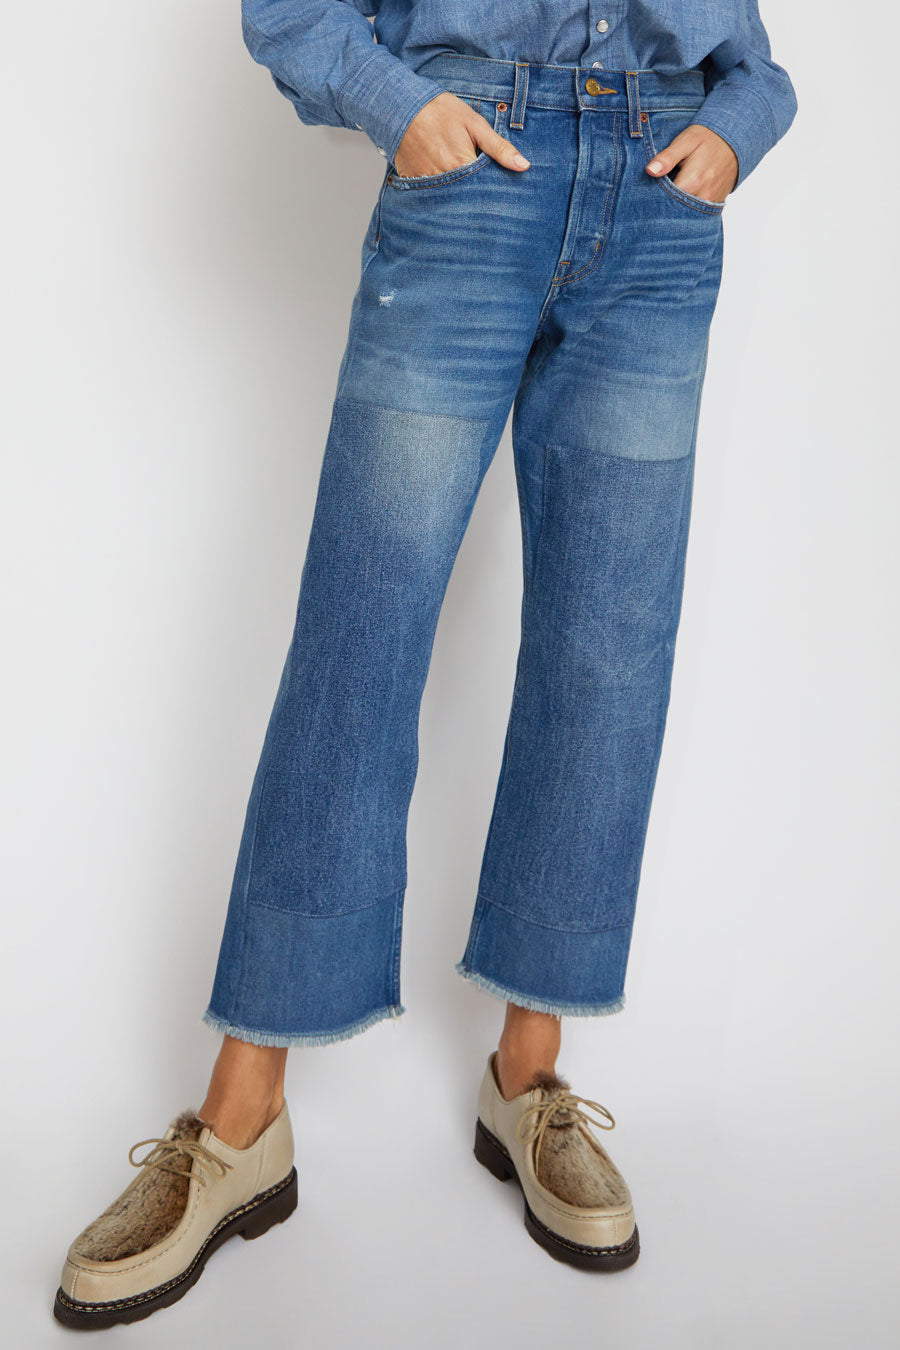 B Sides Marcel Relaxed Straight Jean in Murray Medium Vintage Patchwork 2